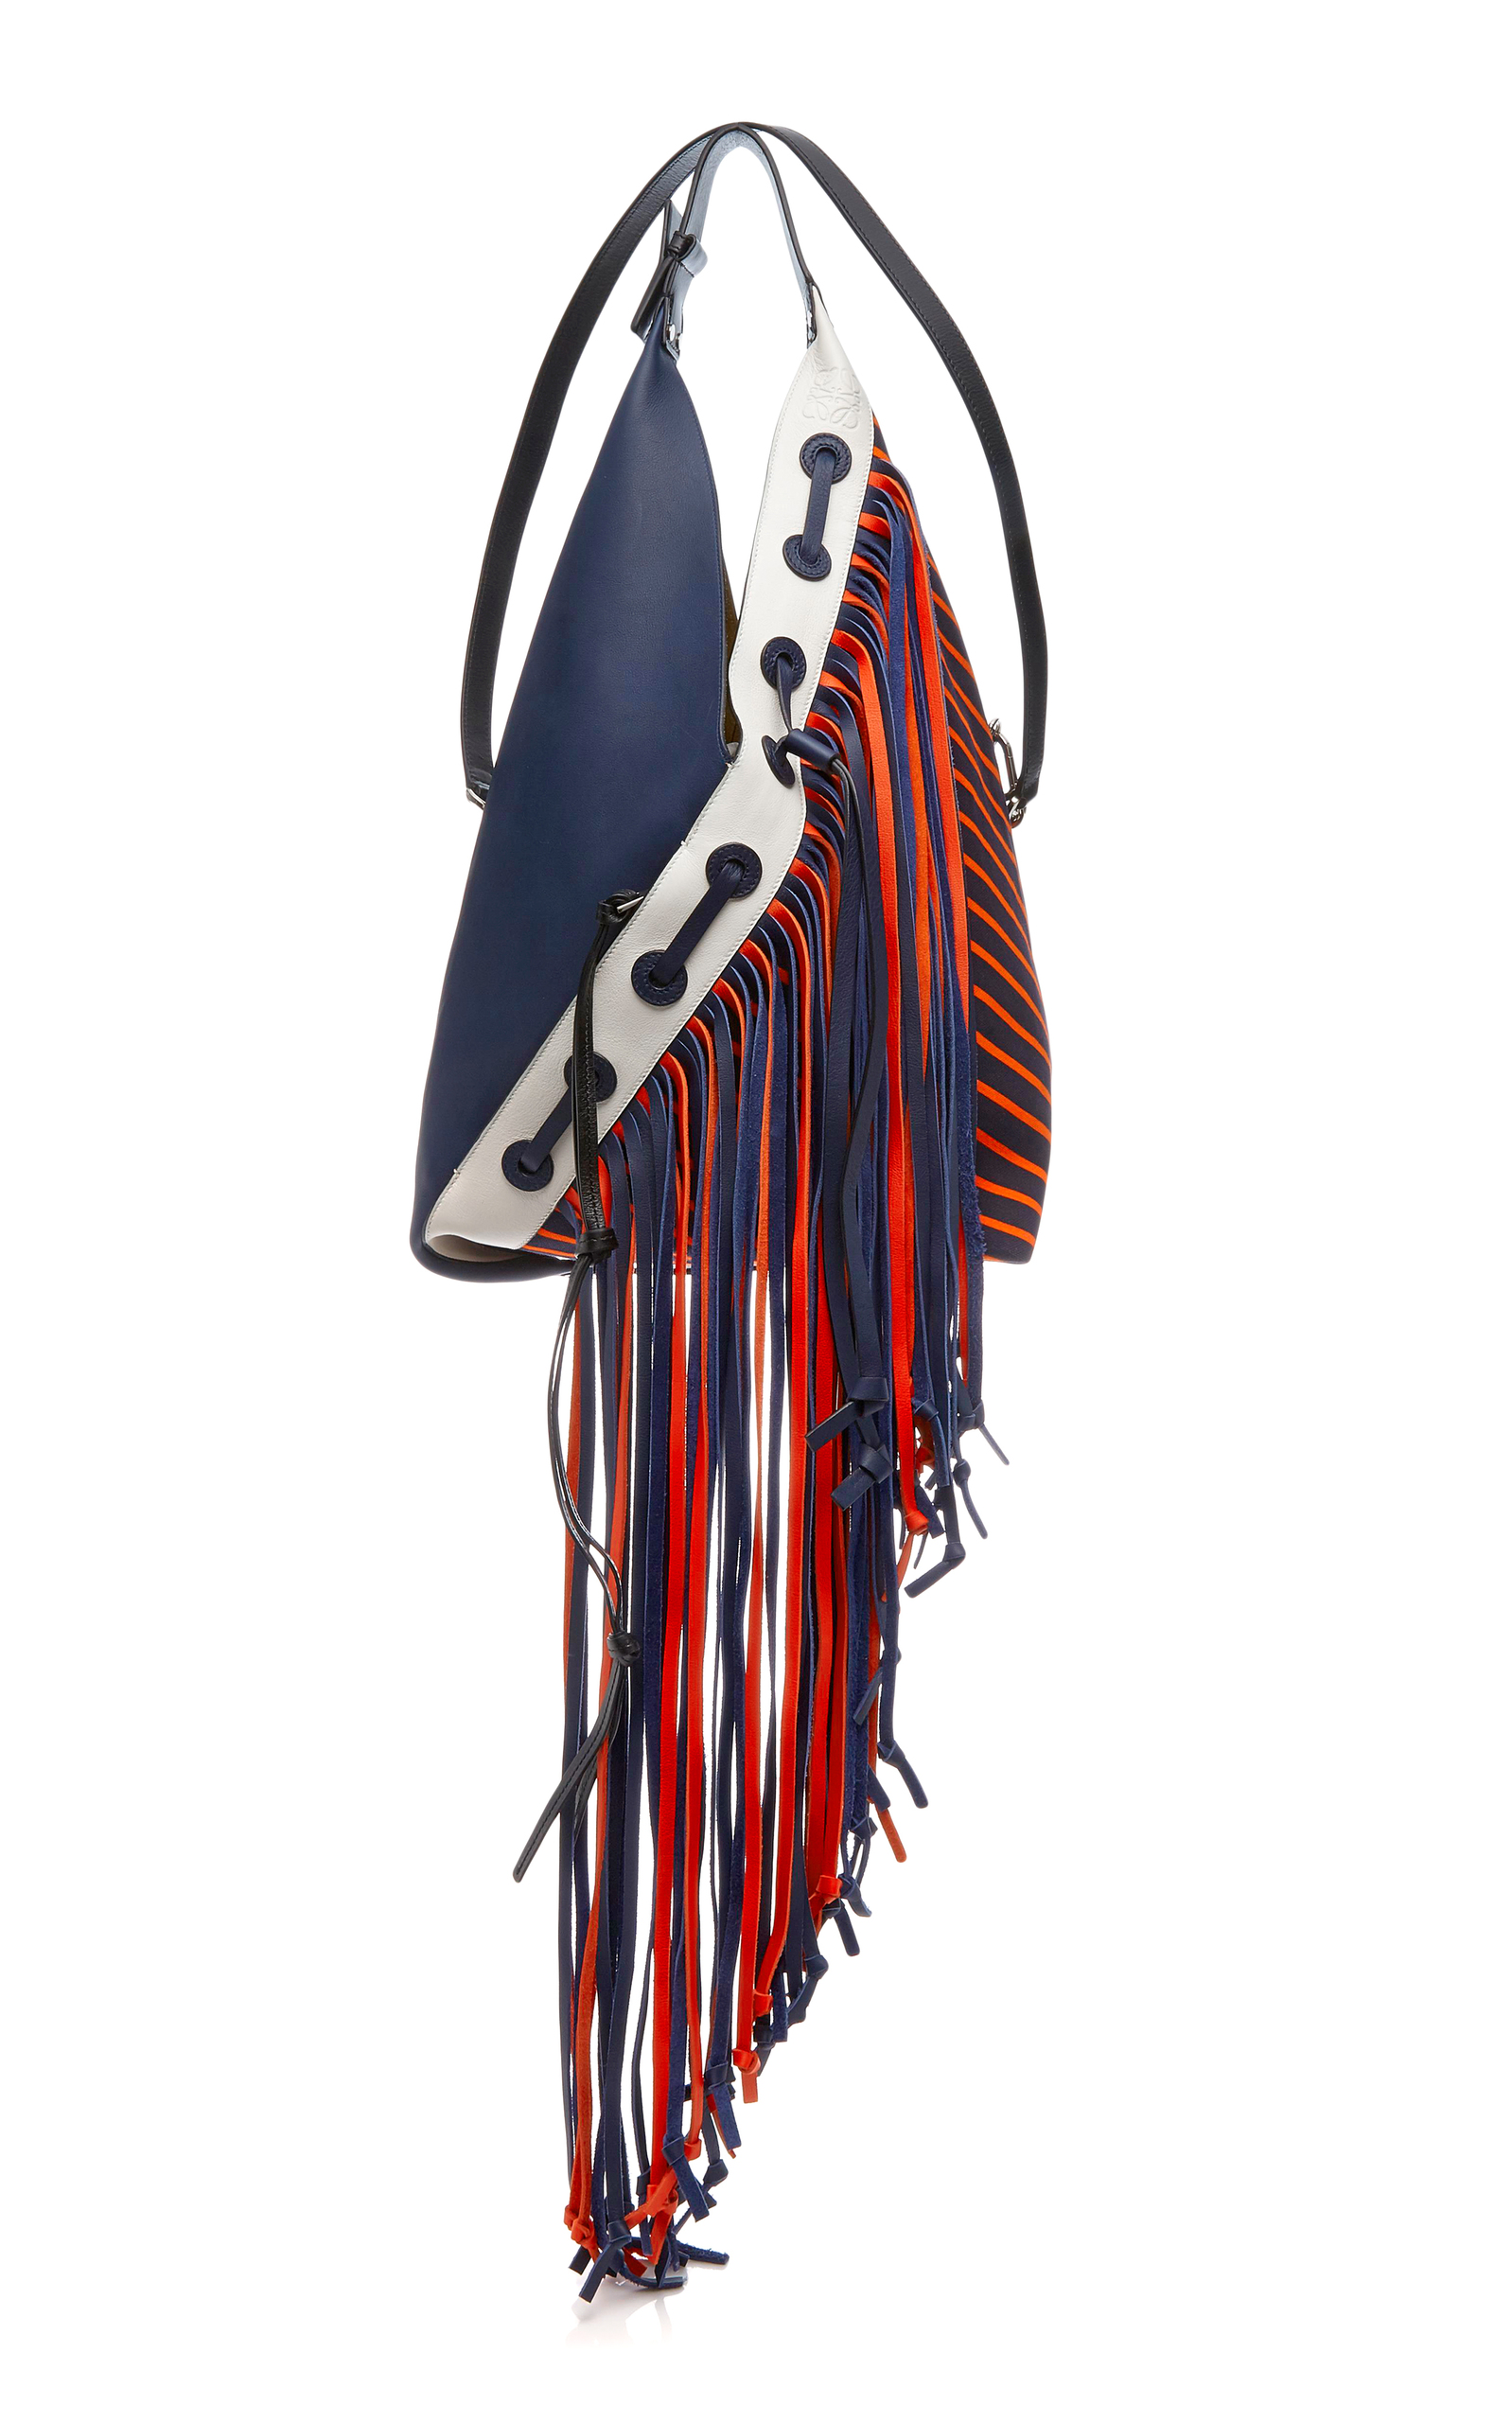 Loewe Canvases TWO TONED SLING CANVAS BAG WITH LEATHER FRINGE